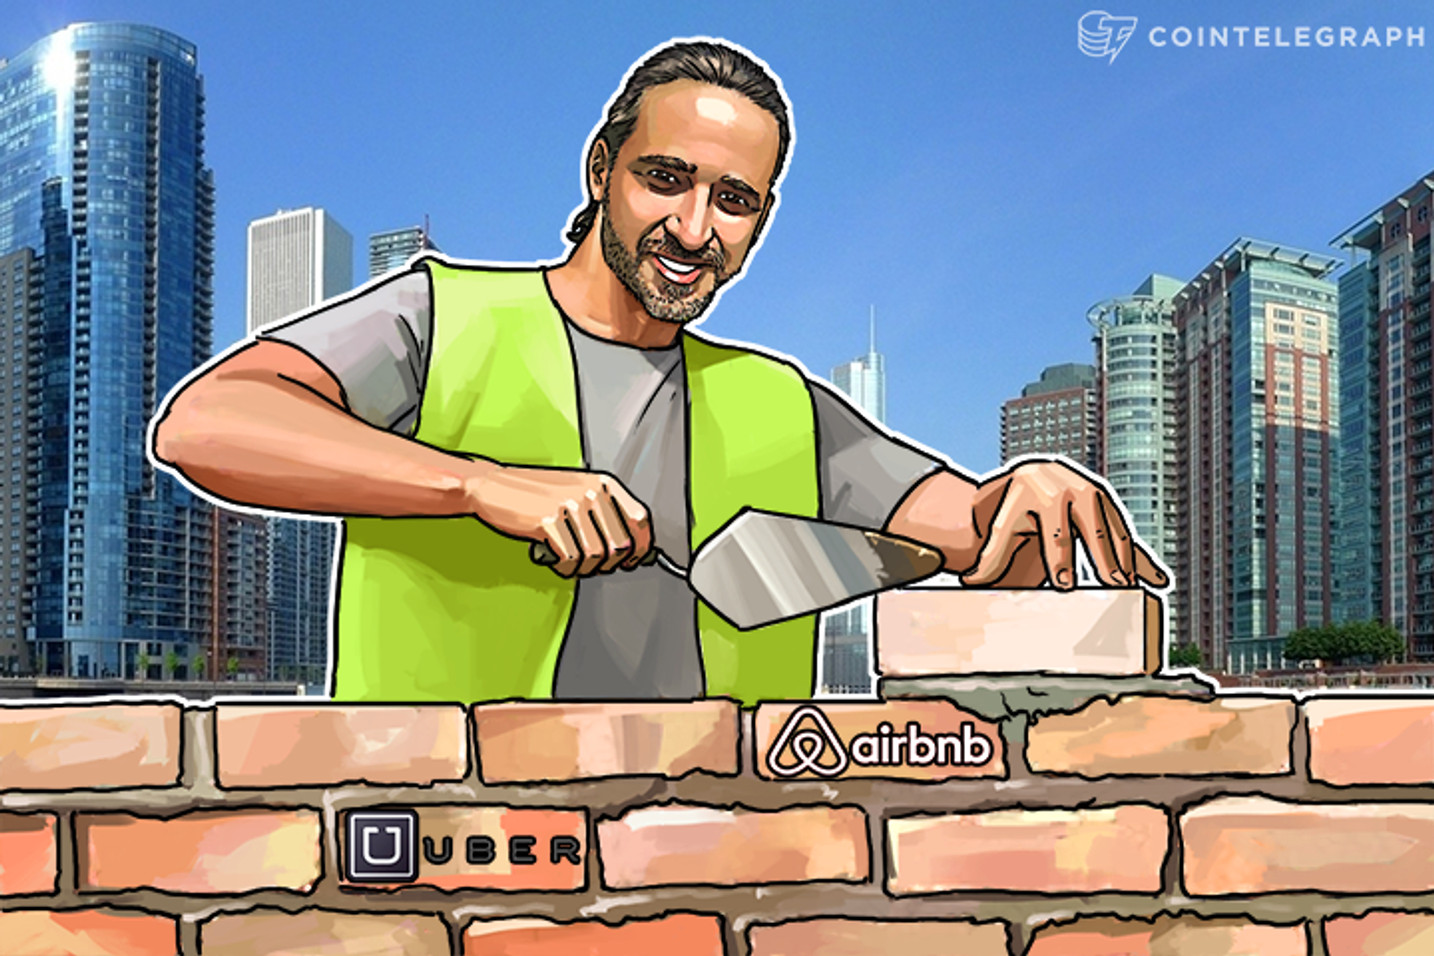 """""""Internet of People"""": How Blockchain Could Improve Uber, Airbnb and Other Services"""